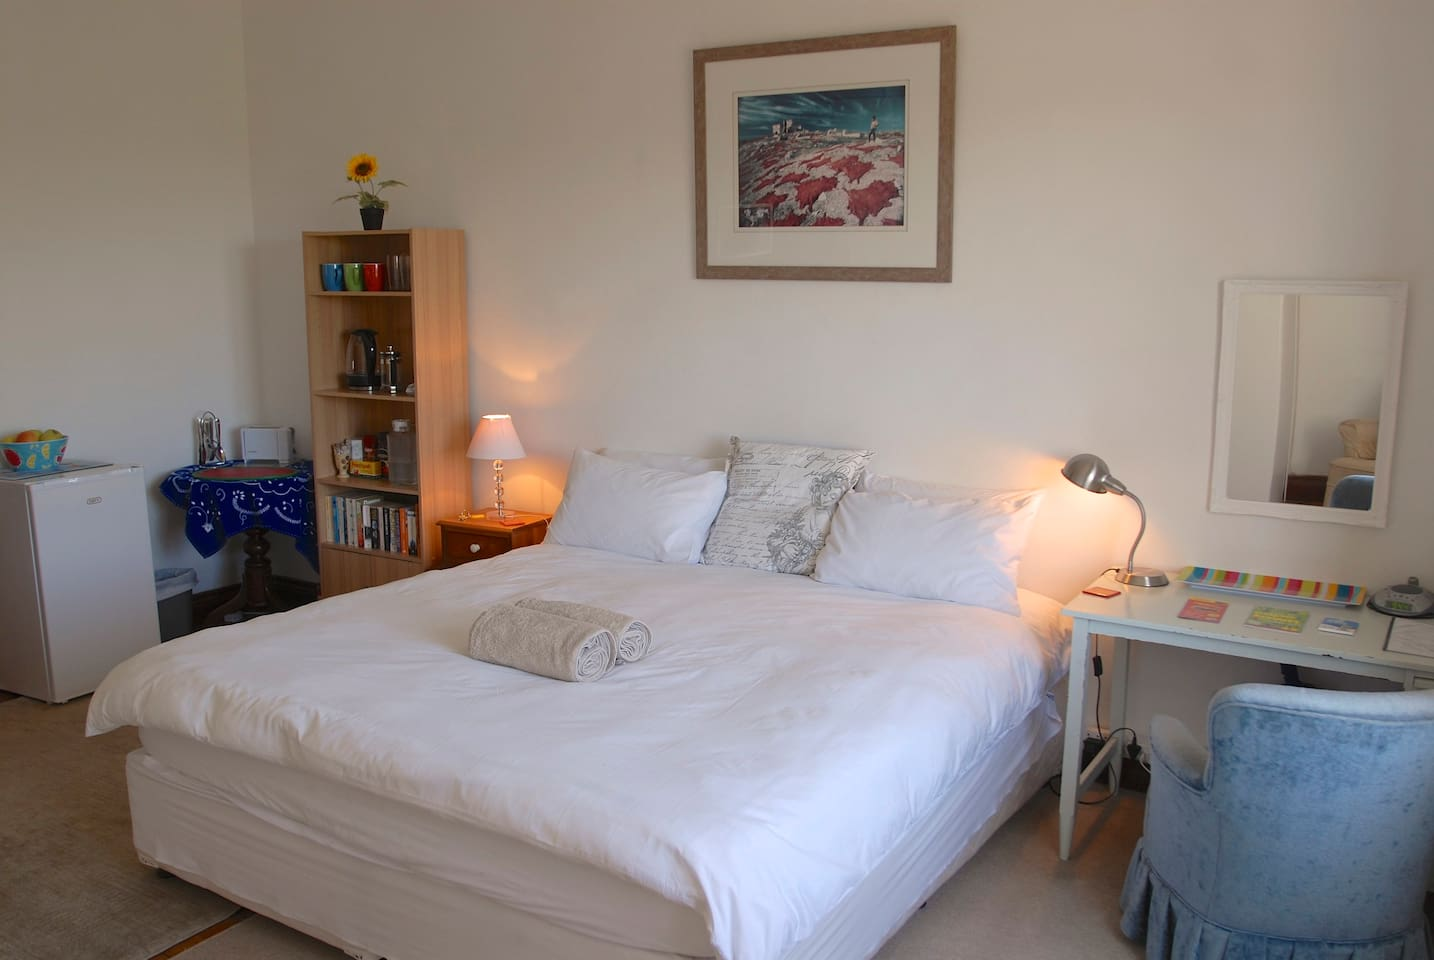 SPECIAL 30% DISCOUNT !! - Fully equipped, private, cosy, fridge, kettle, toaster, hair dryer, iron, fibre internet, desk, plates, cups, glasses, coffee, tea, utensils, many cupboards, armchairs, books to read, table and a view ... your home from home